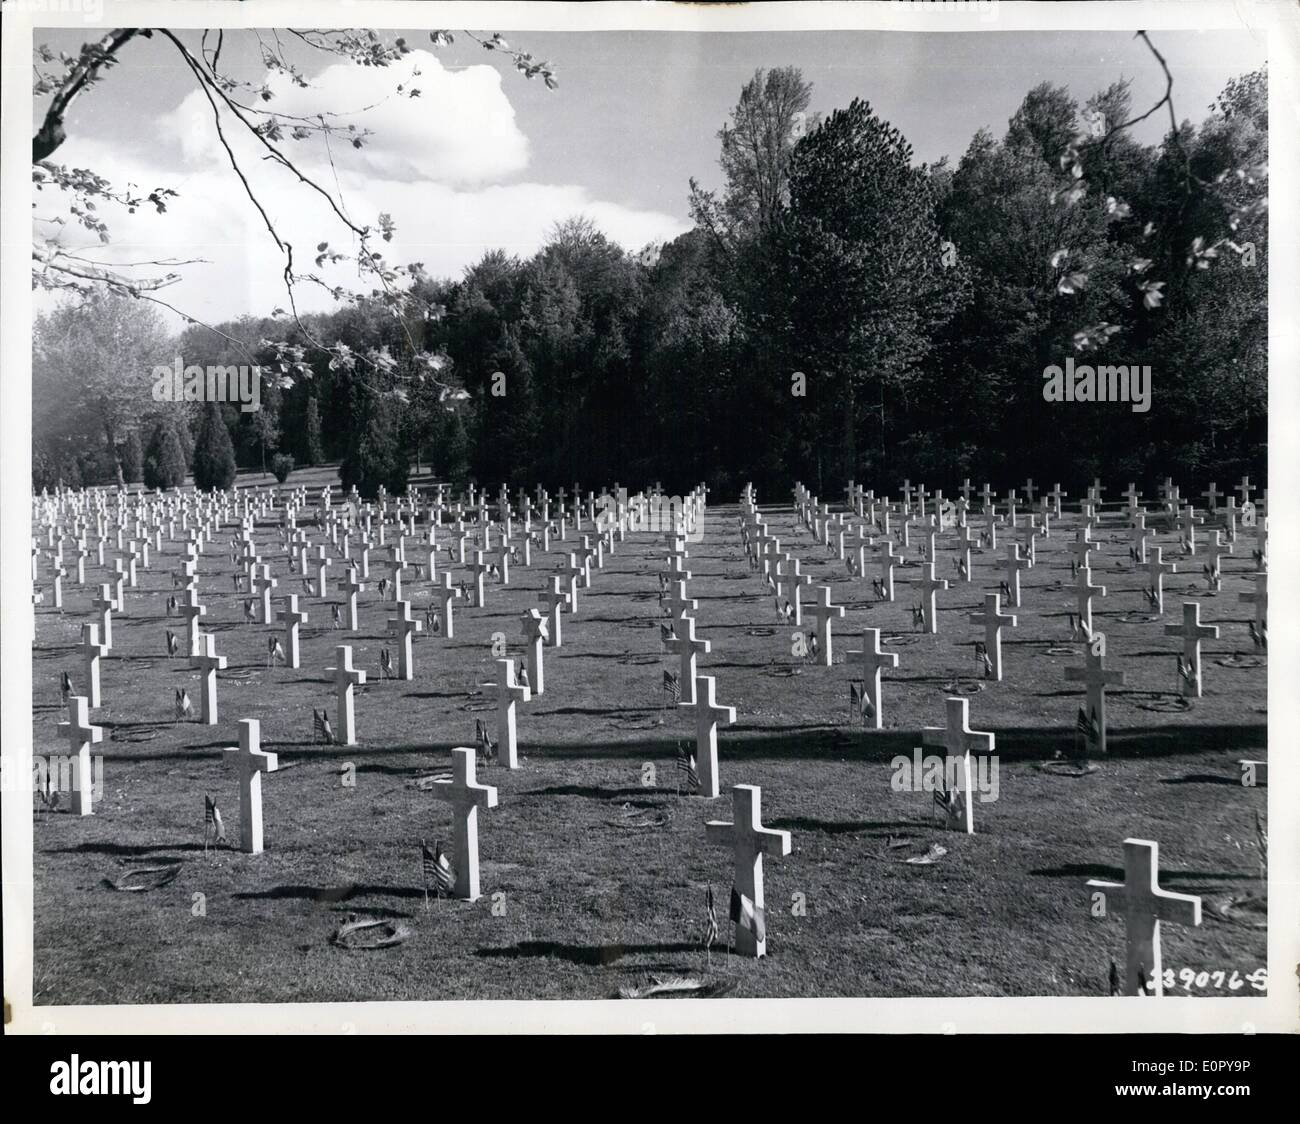 May 05, 1957 - America Honors Its War Dead: View of World War I American cemetery at Belleau Wood, near Chateau Thierry, France. - Stock Image